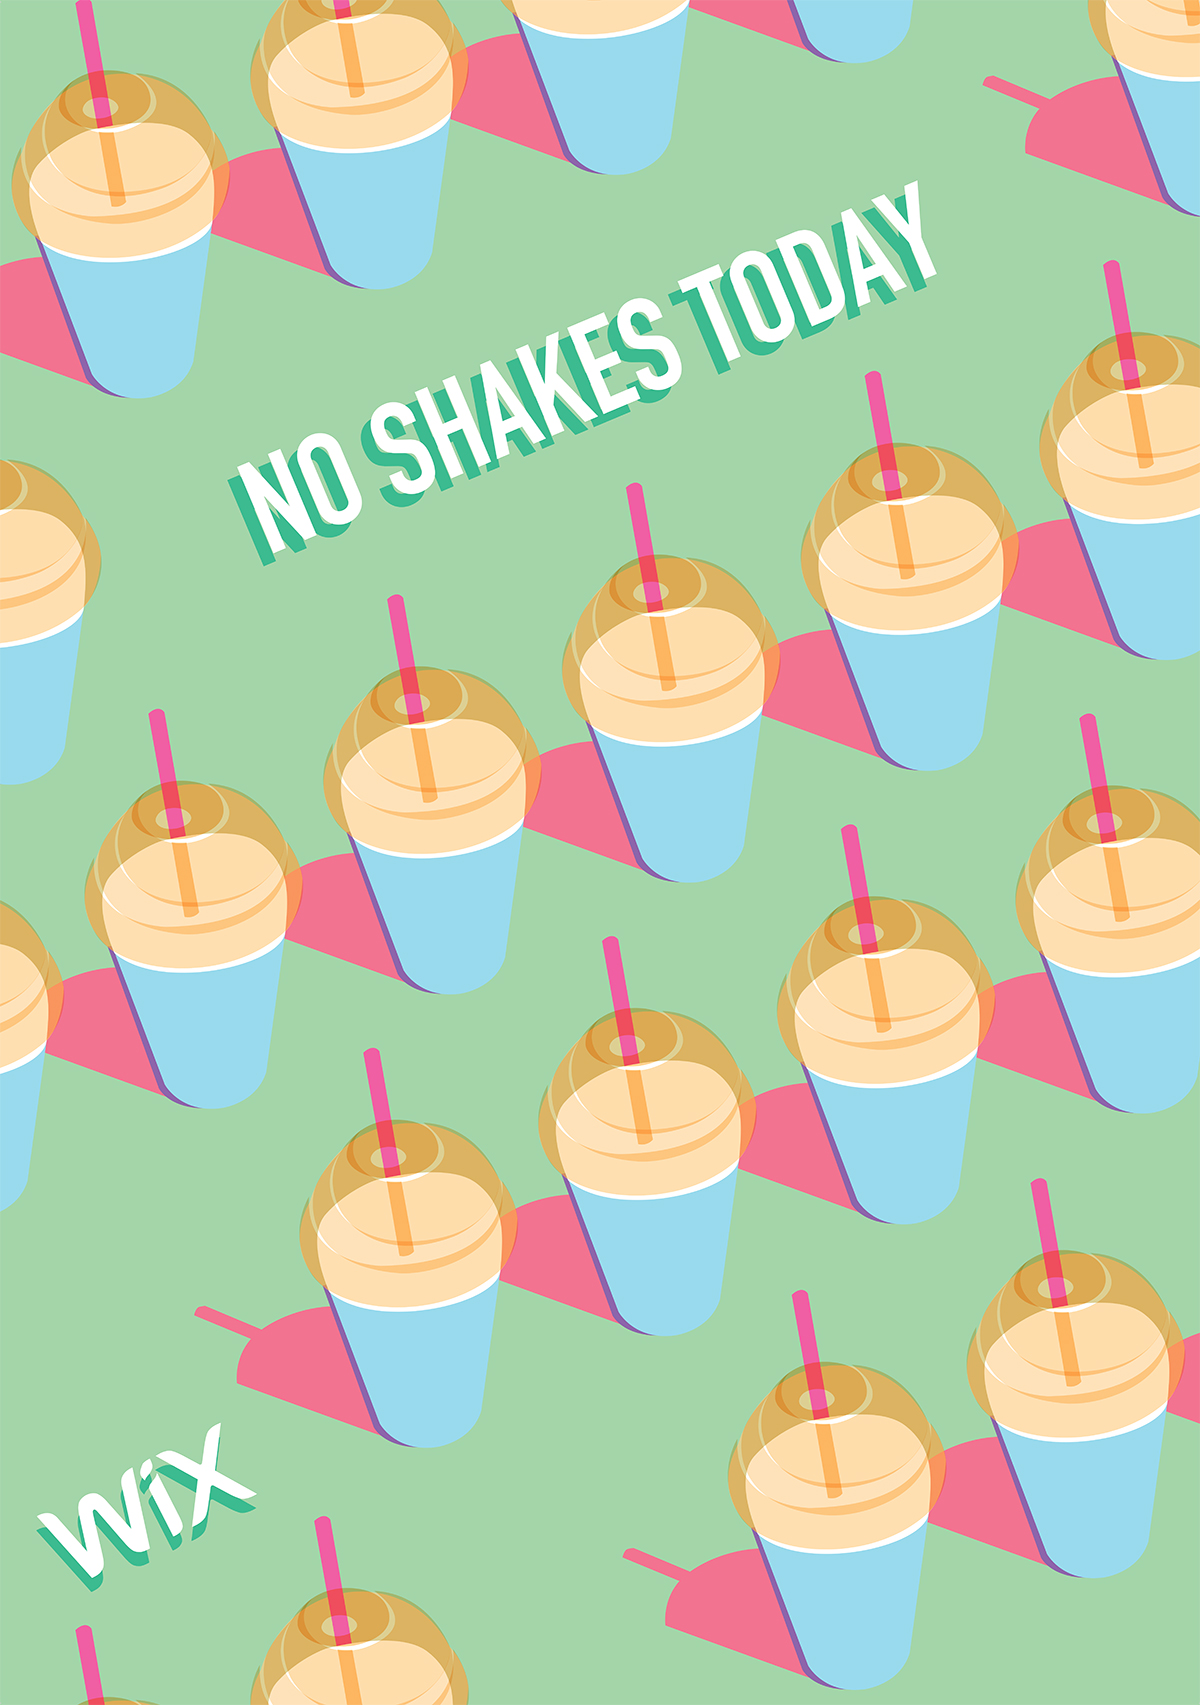 No Shakes Today